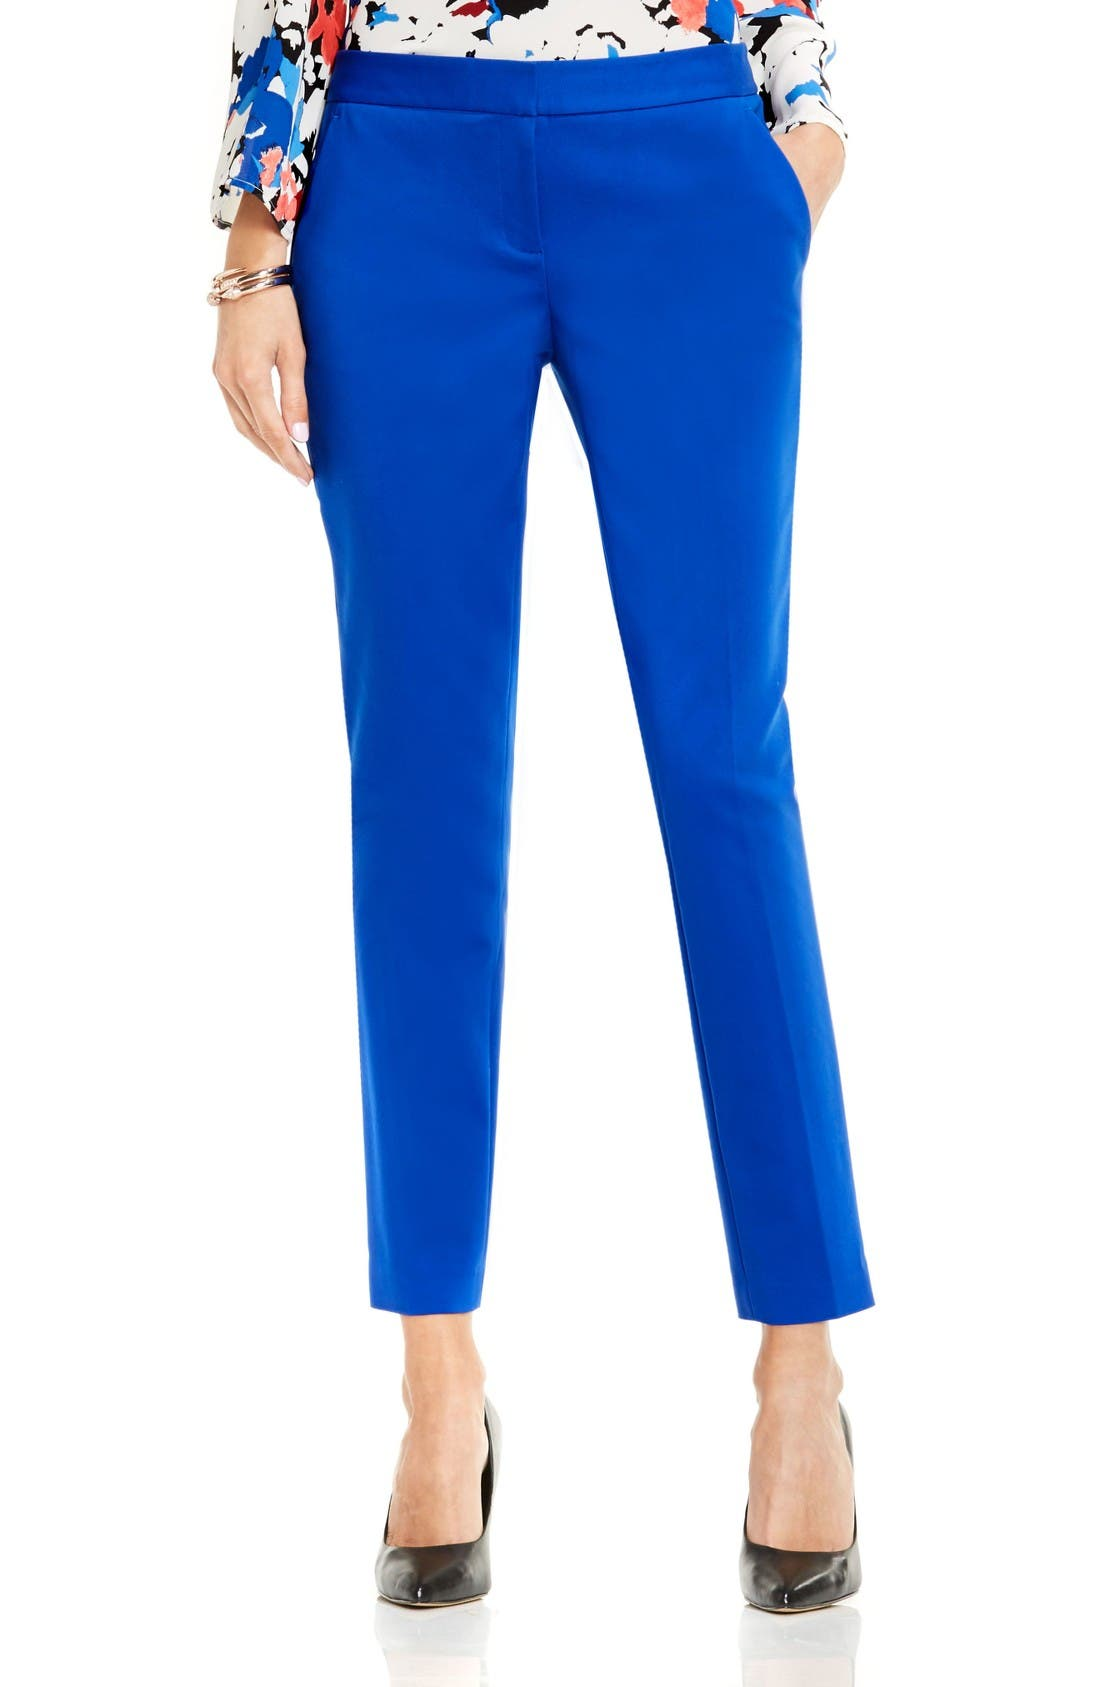 Alternate Image 1 Selected - Vince Camuto Stretch Slim Ankle Pants